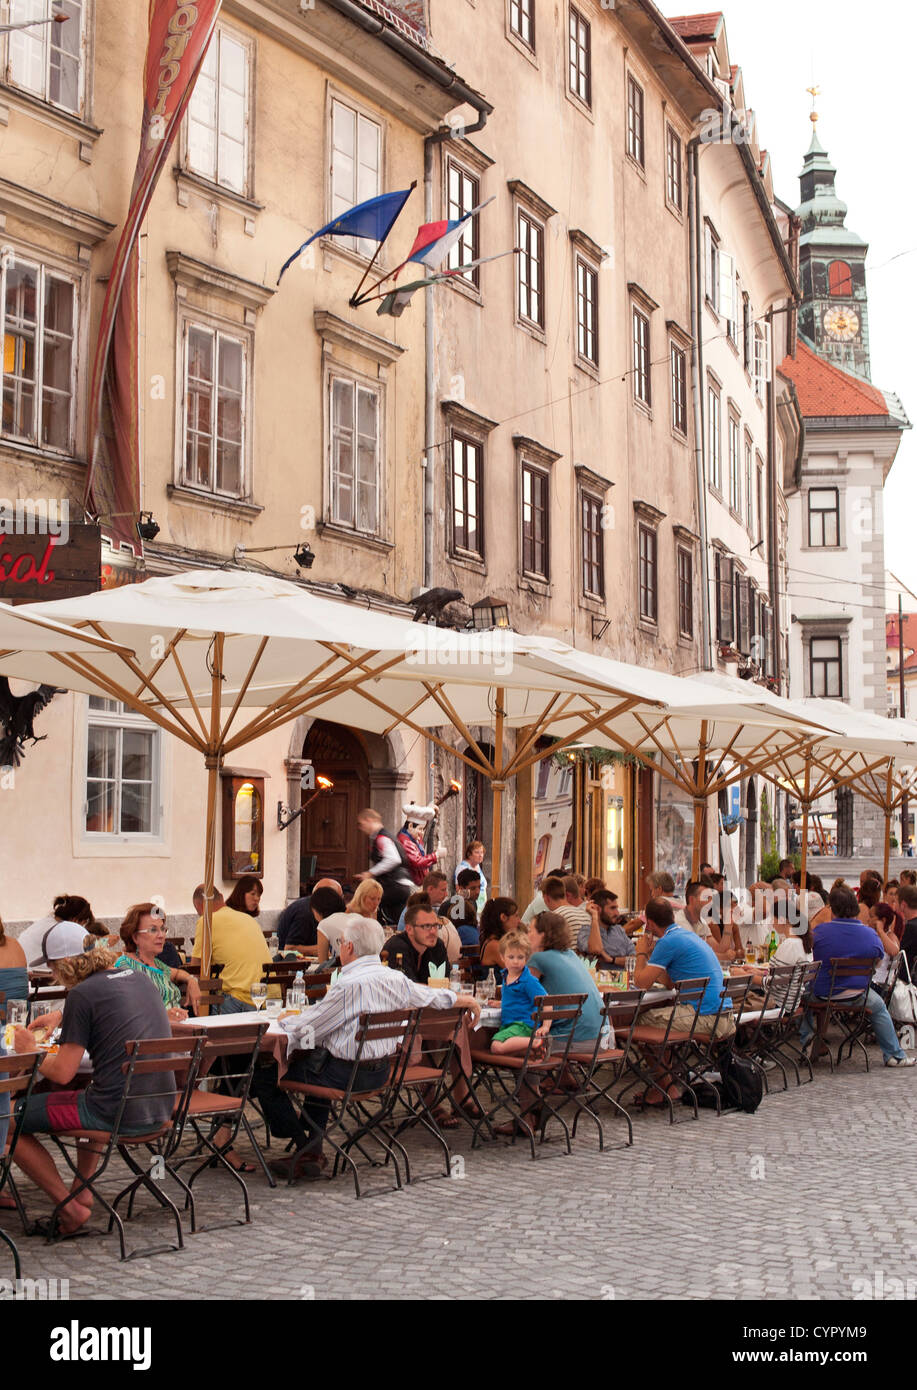 Sidewalk cafés in the old town in Ljubljana, the capital of Slovenia. - Stock Image